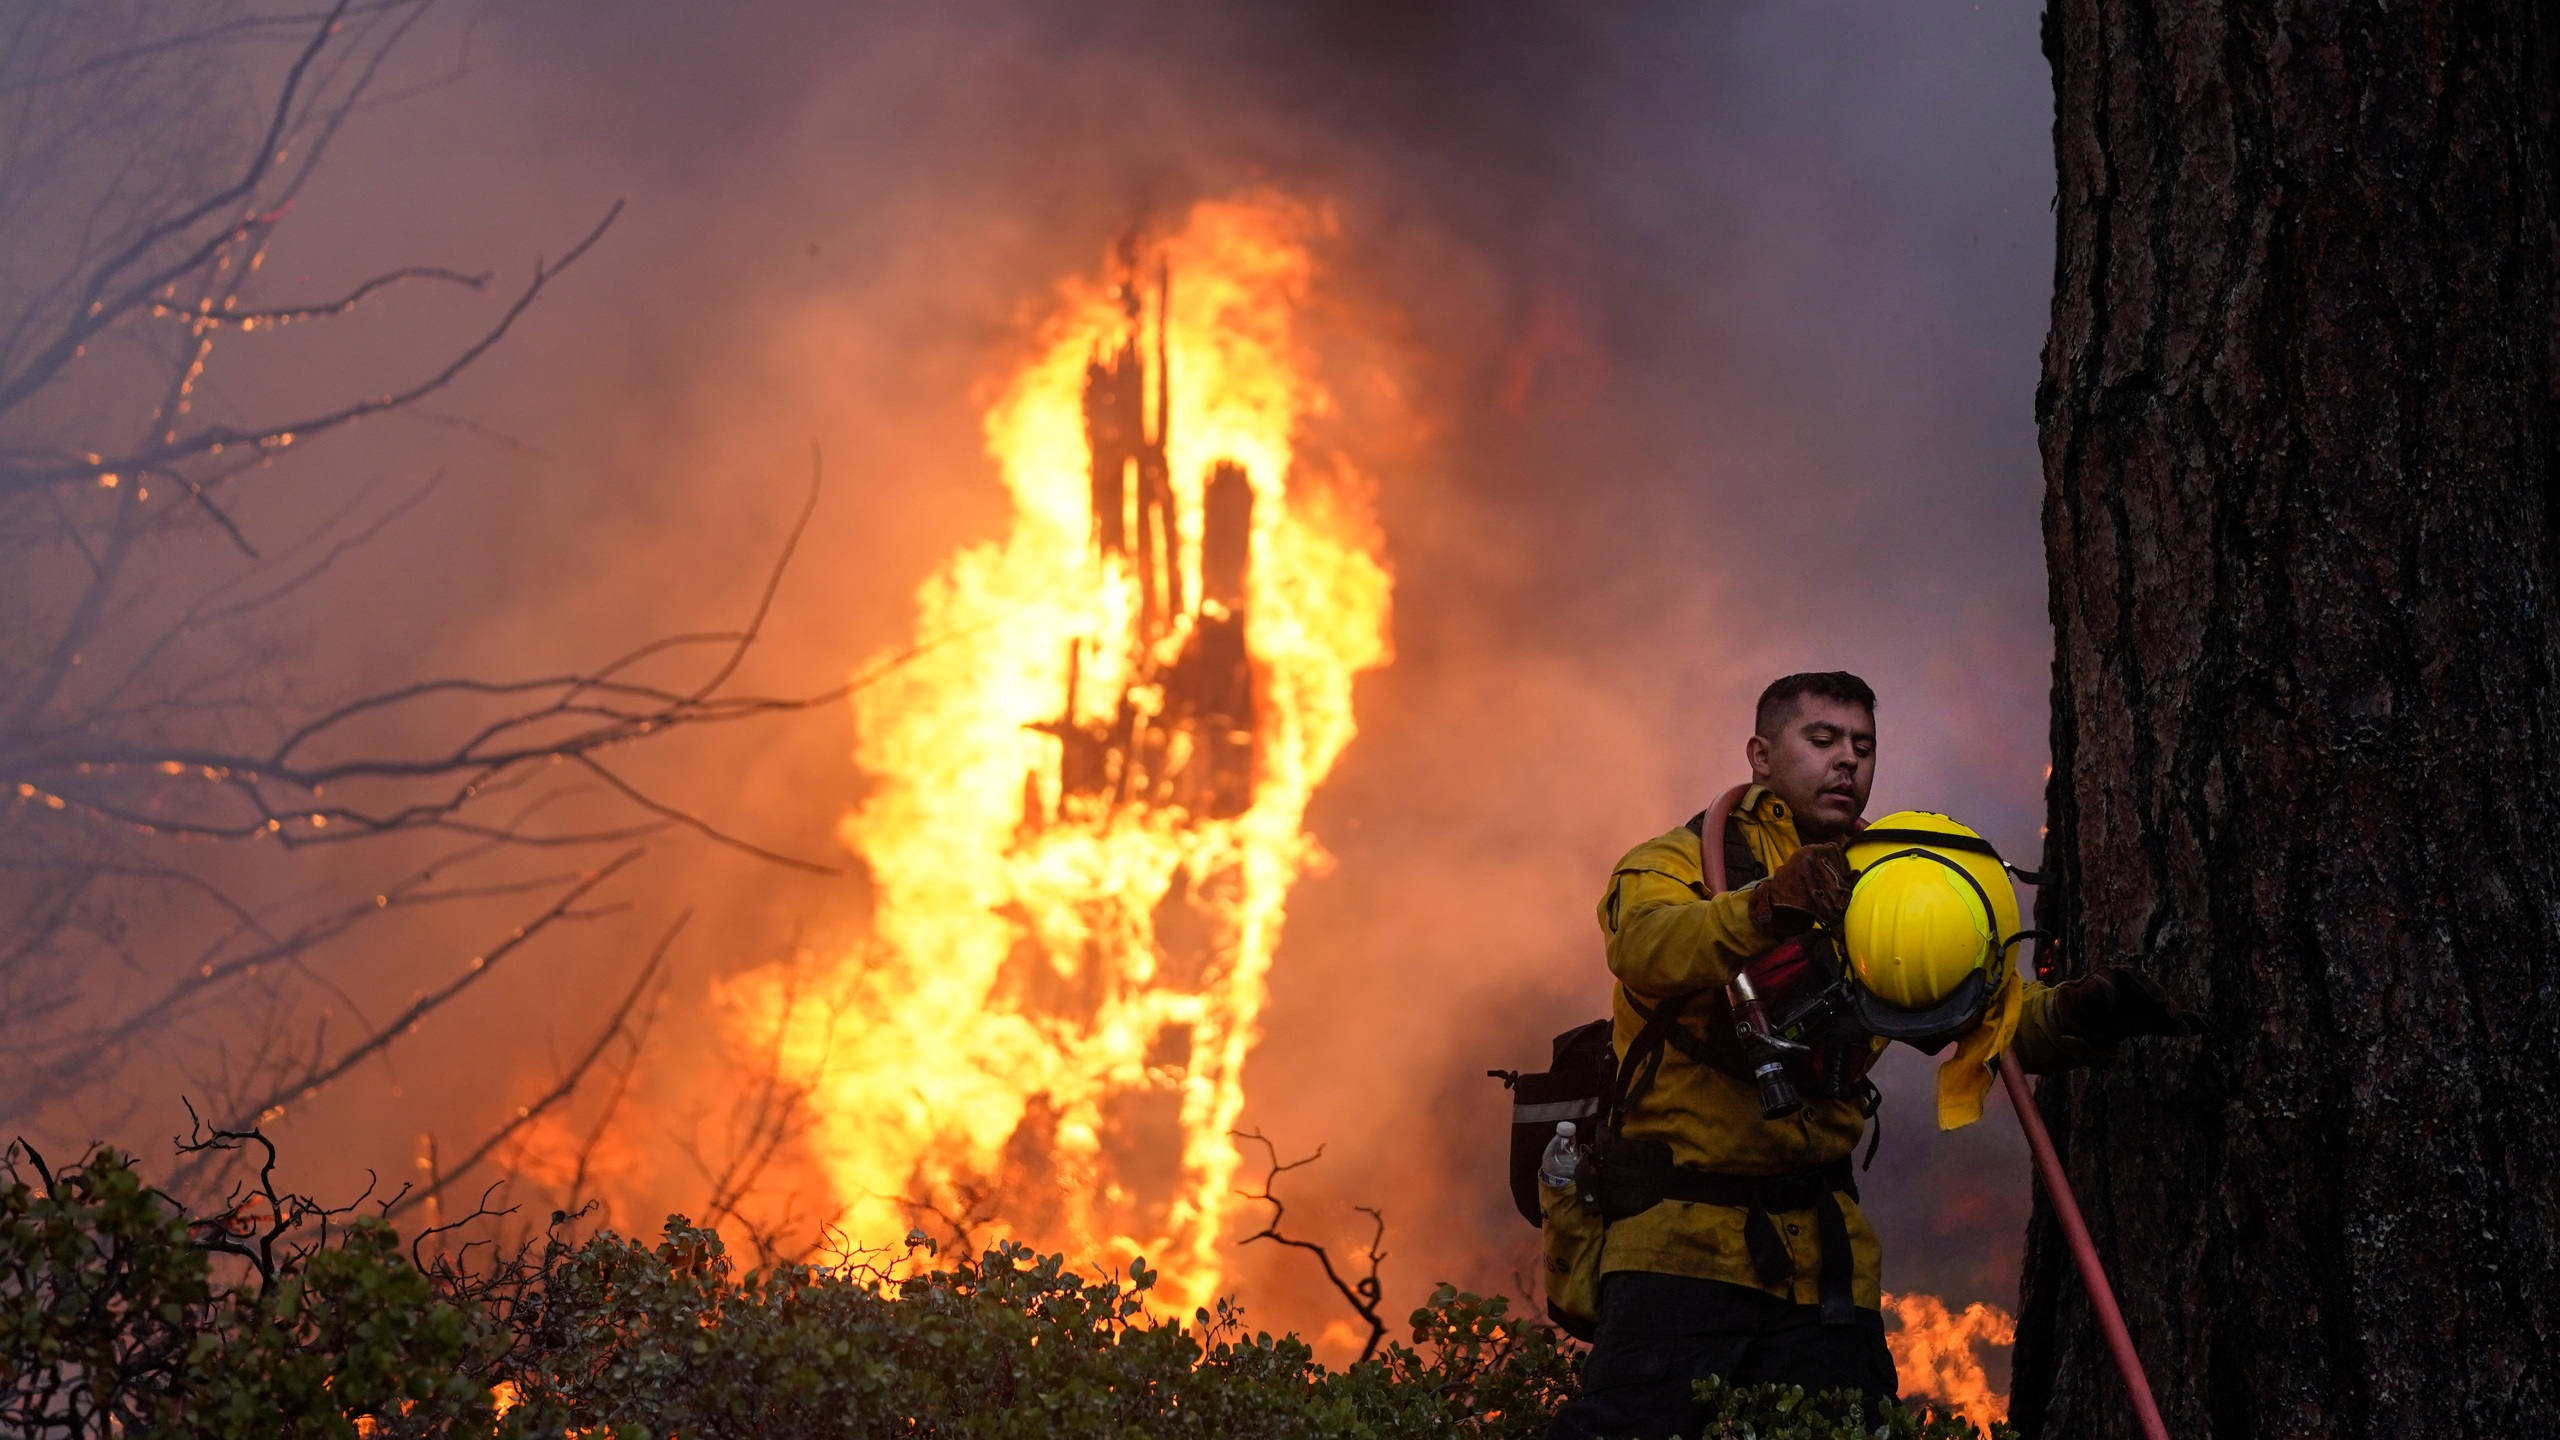 Firefighter Elroy Valadez adjusts his helmet while trying to put out a spot fire from the Caldor Fire burning along Highway 89 near South Lake Tahoe, Calif., Thursday, Sept. 2, 2021. (AP Photo/Jae C. Hong)